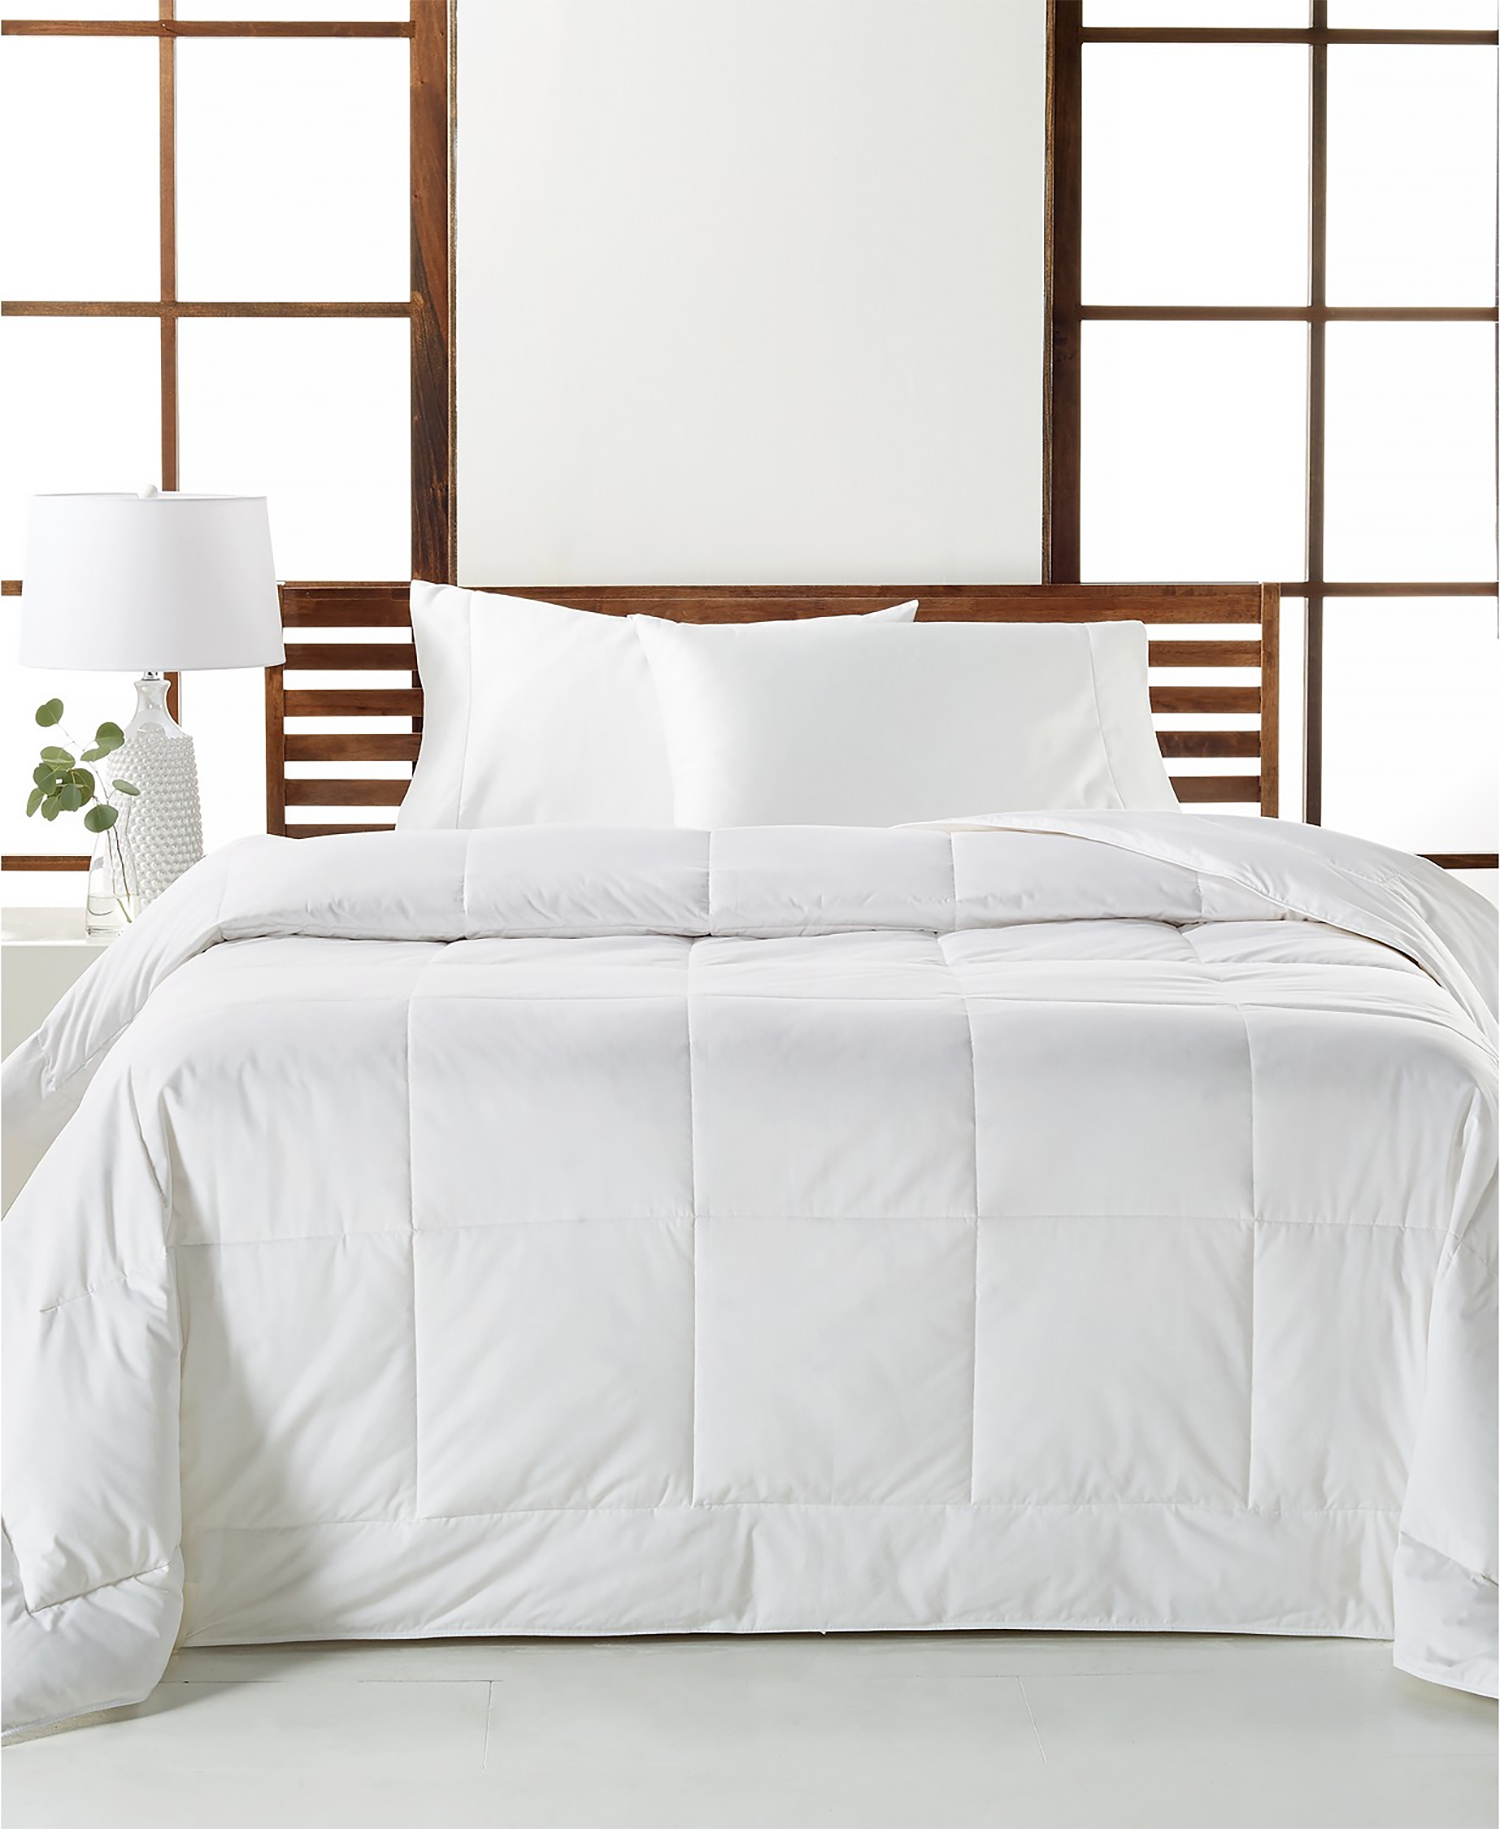 Luxury Bedding Is 70 Off At Macy S Labor Day Sale Real Simple